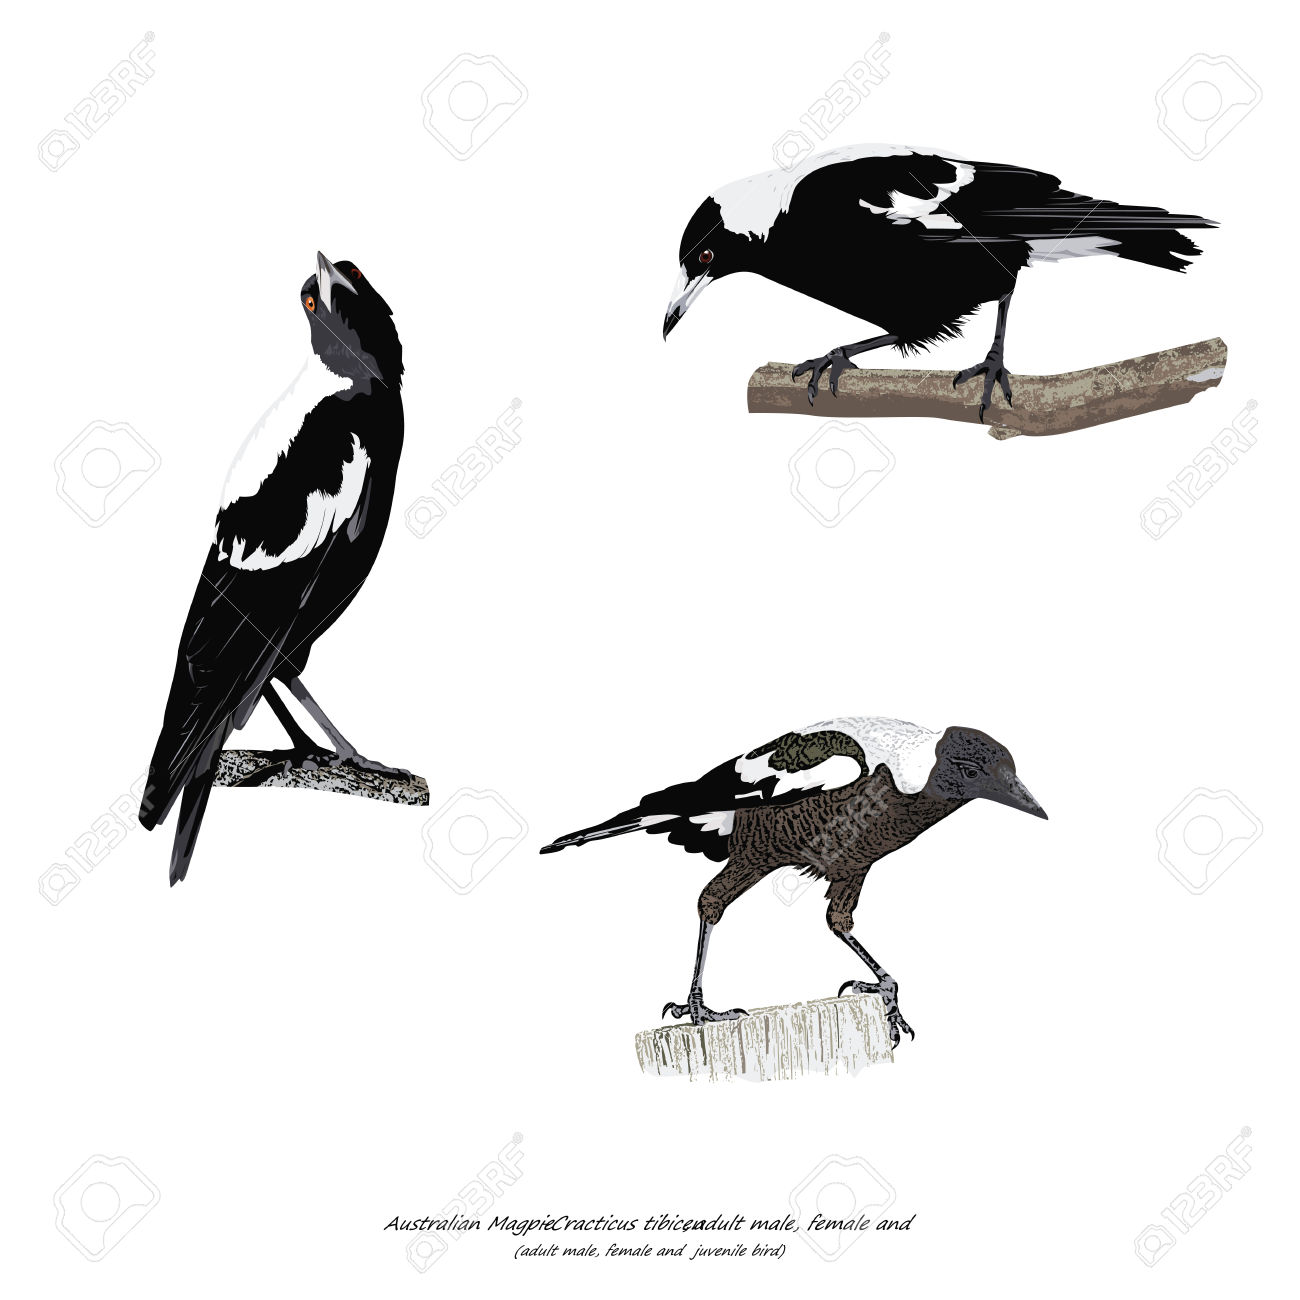 Australian Magpie clipart #10, Download drawings